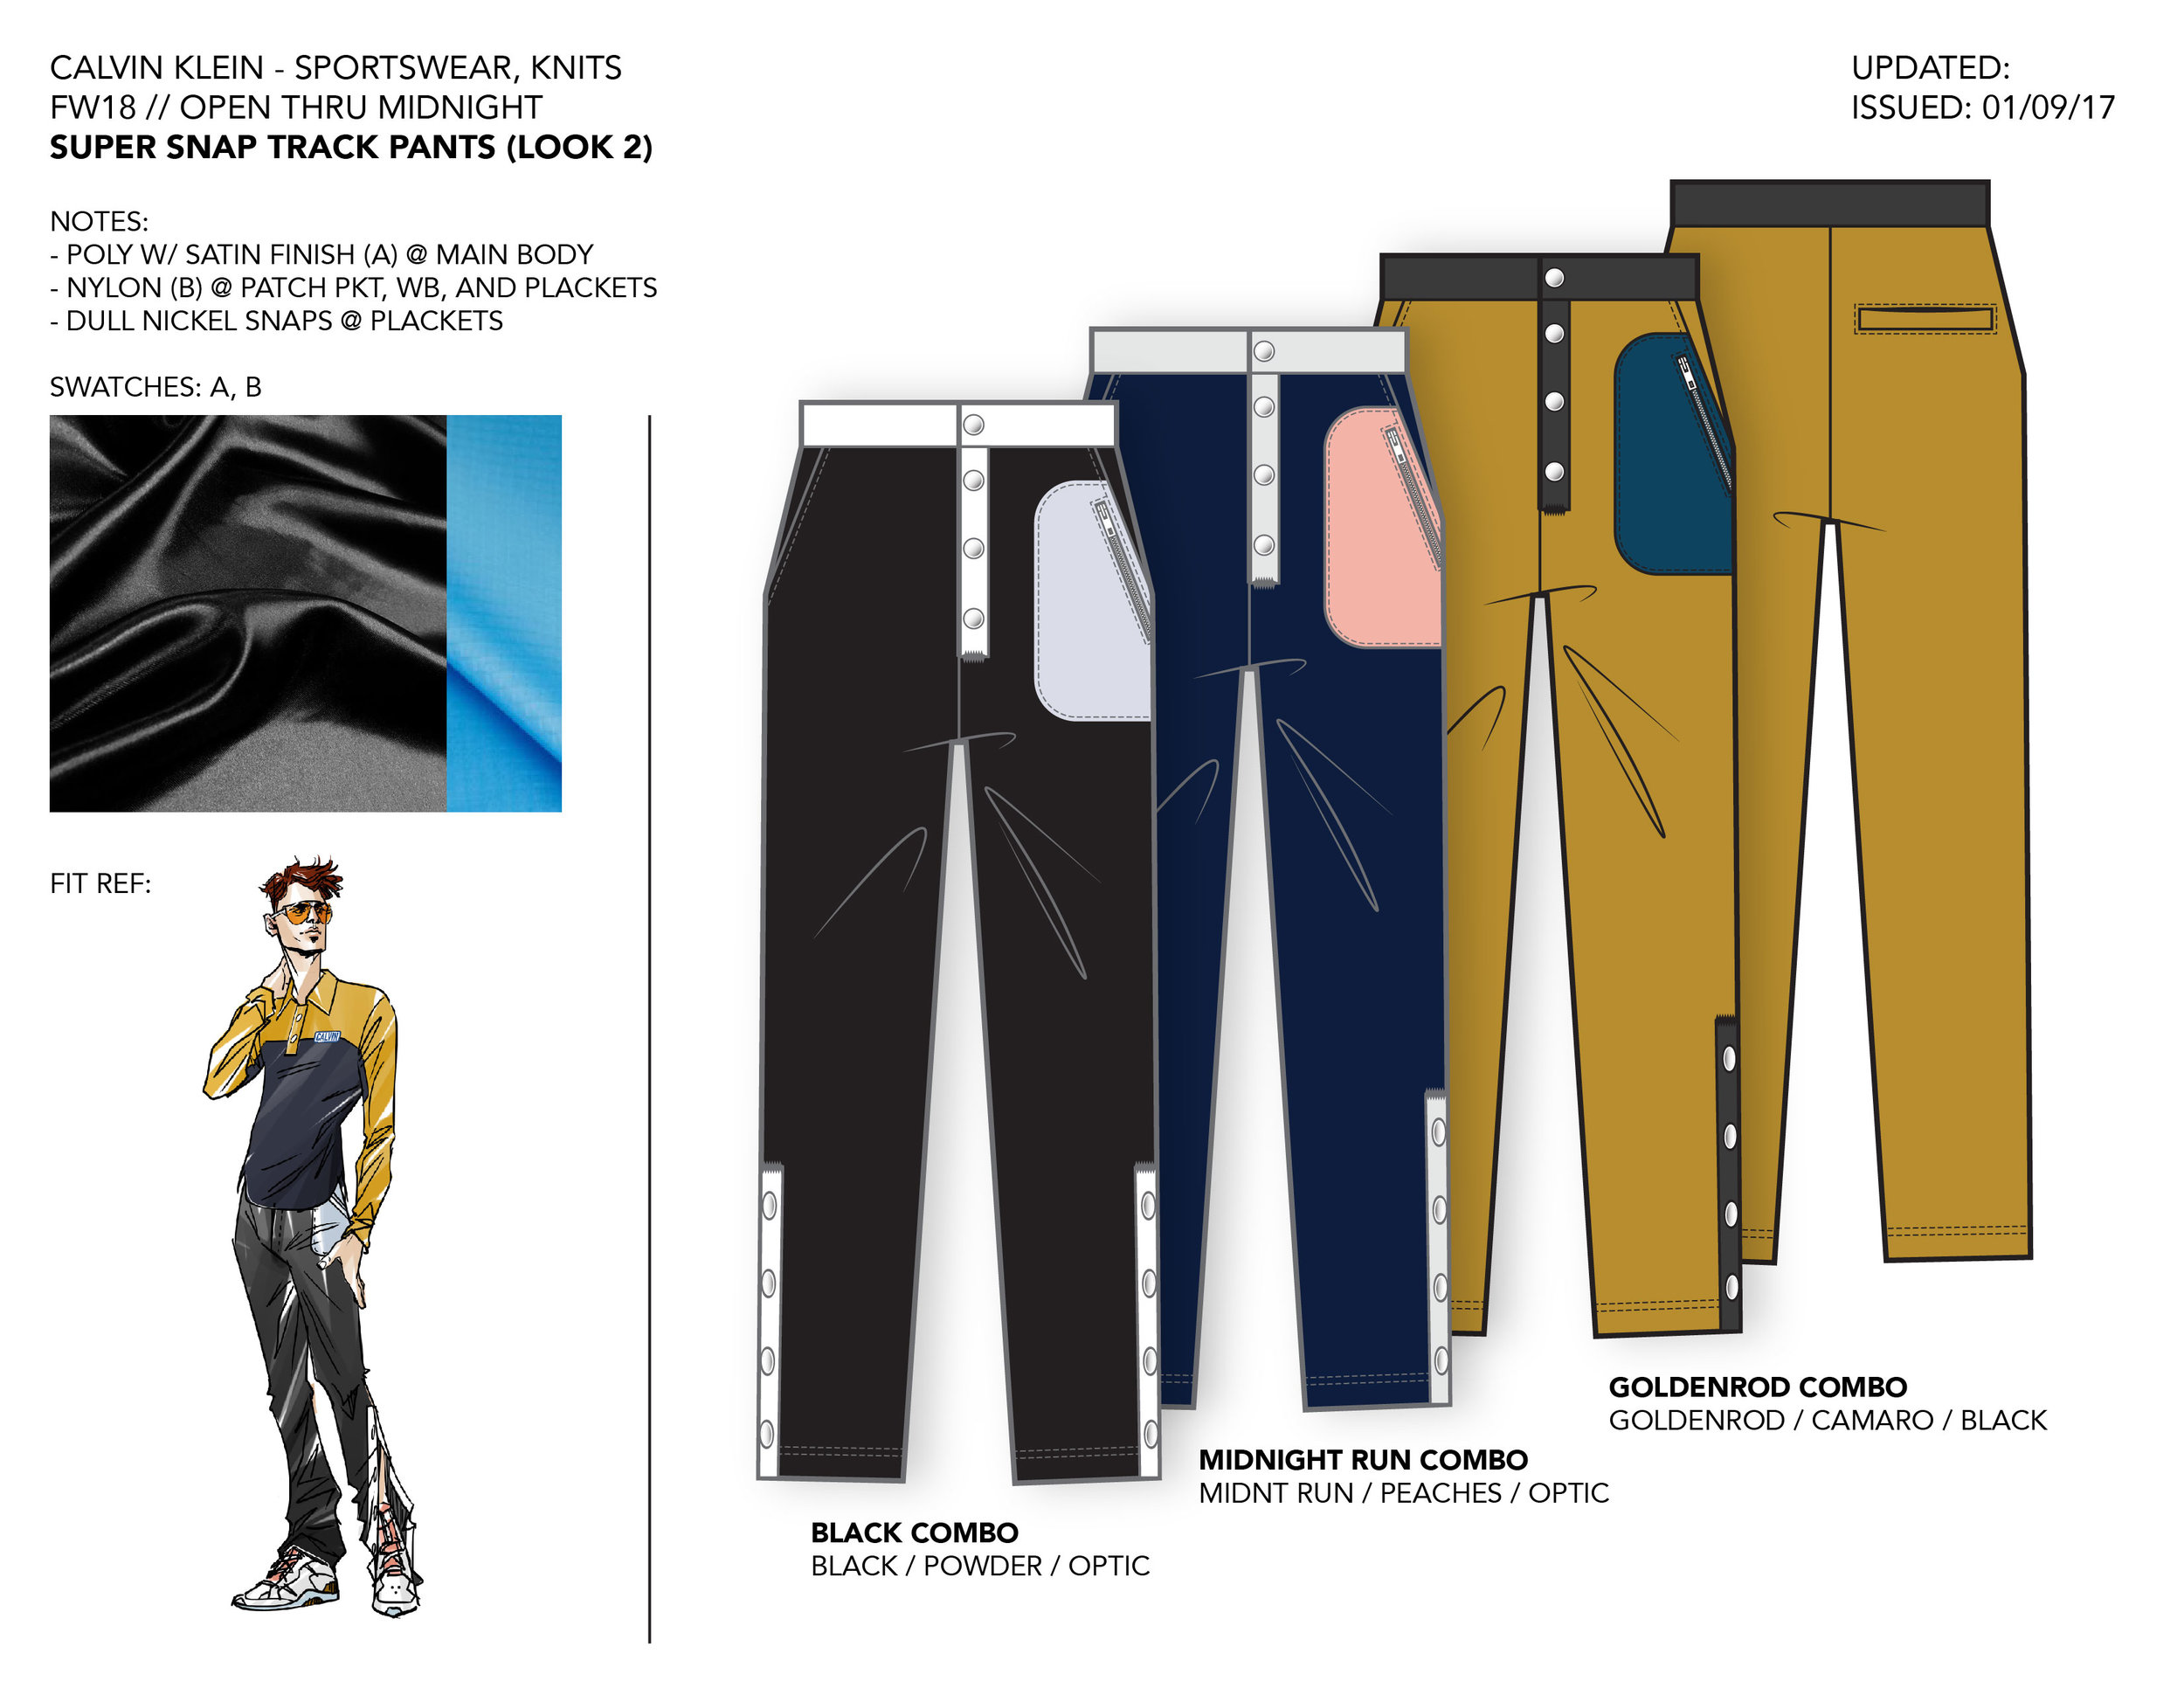 LOOK 2 - SUPER SNAP TRACK PANT DC.jpg